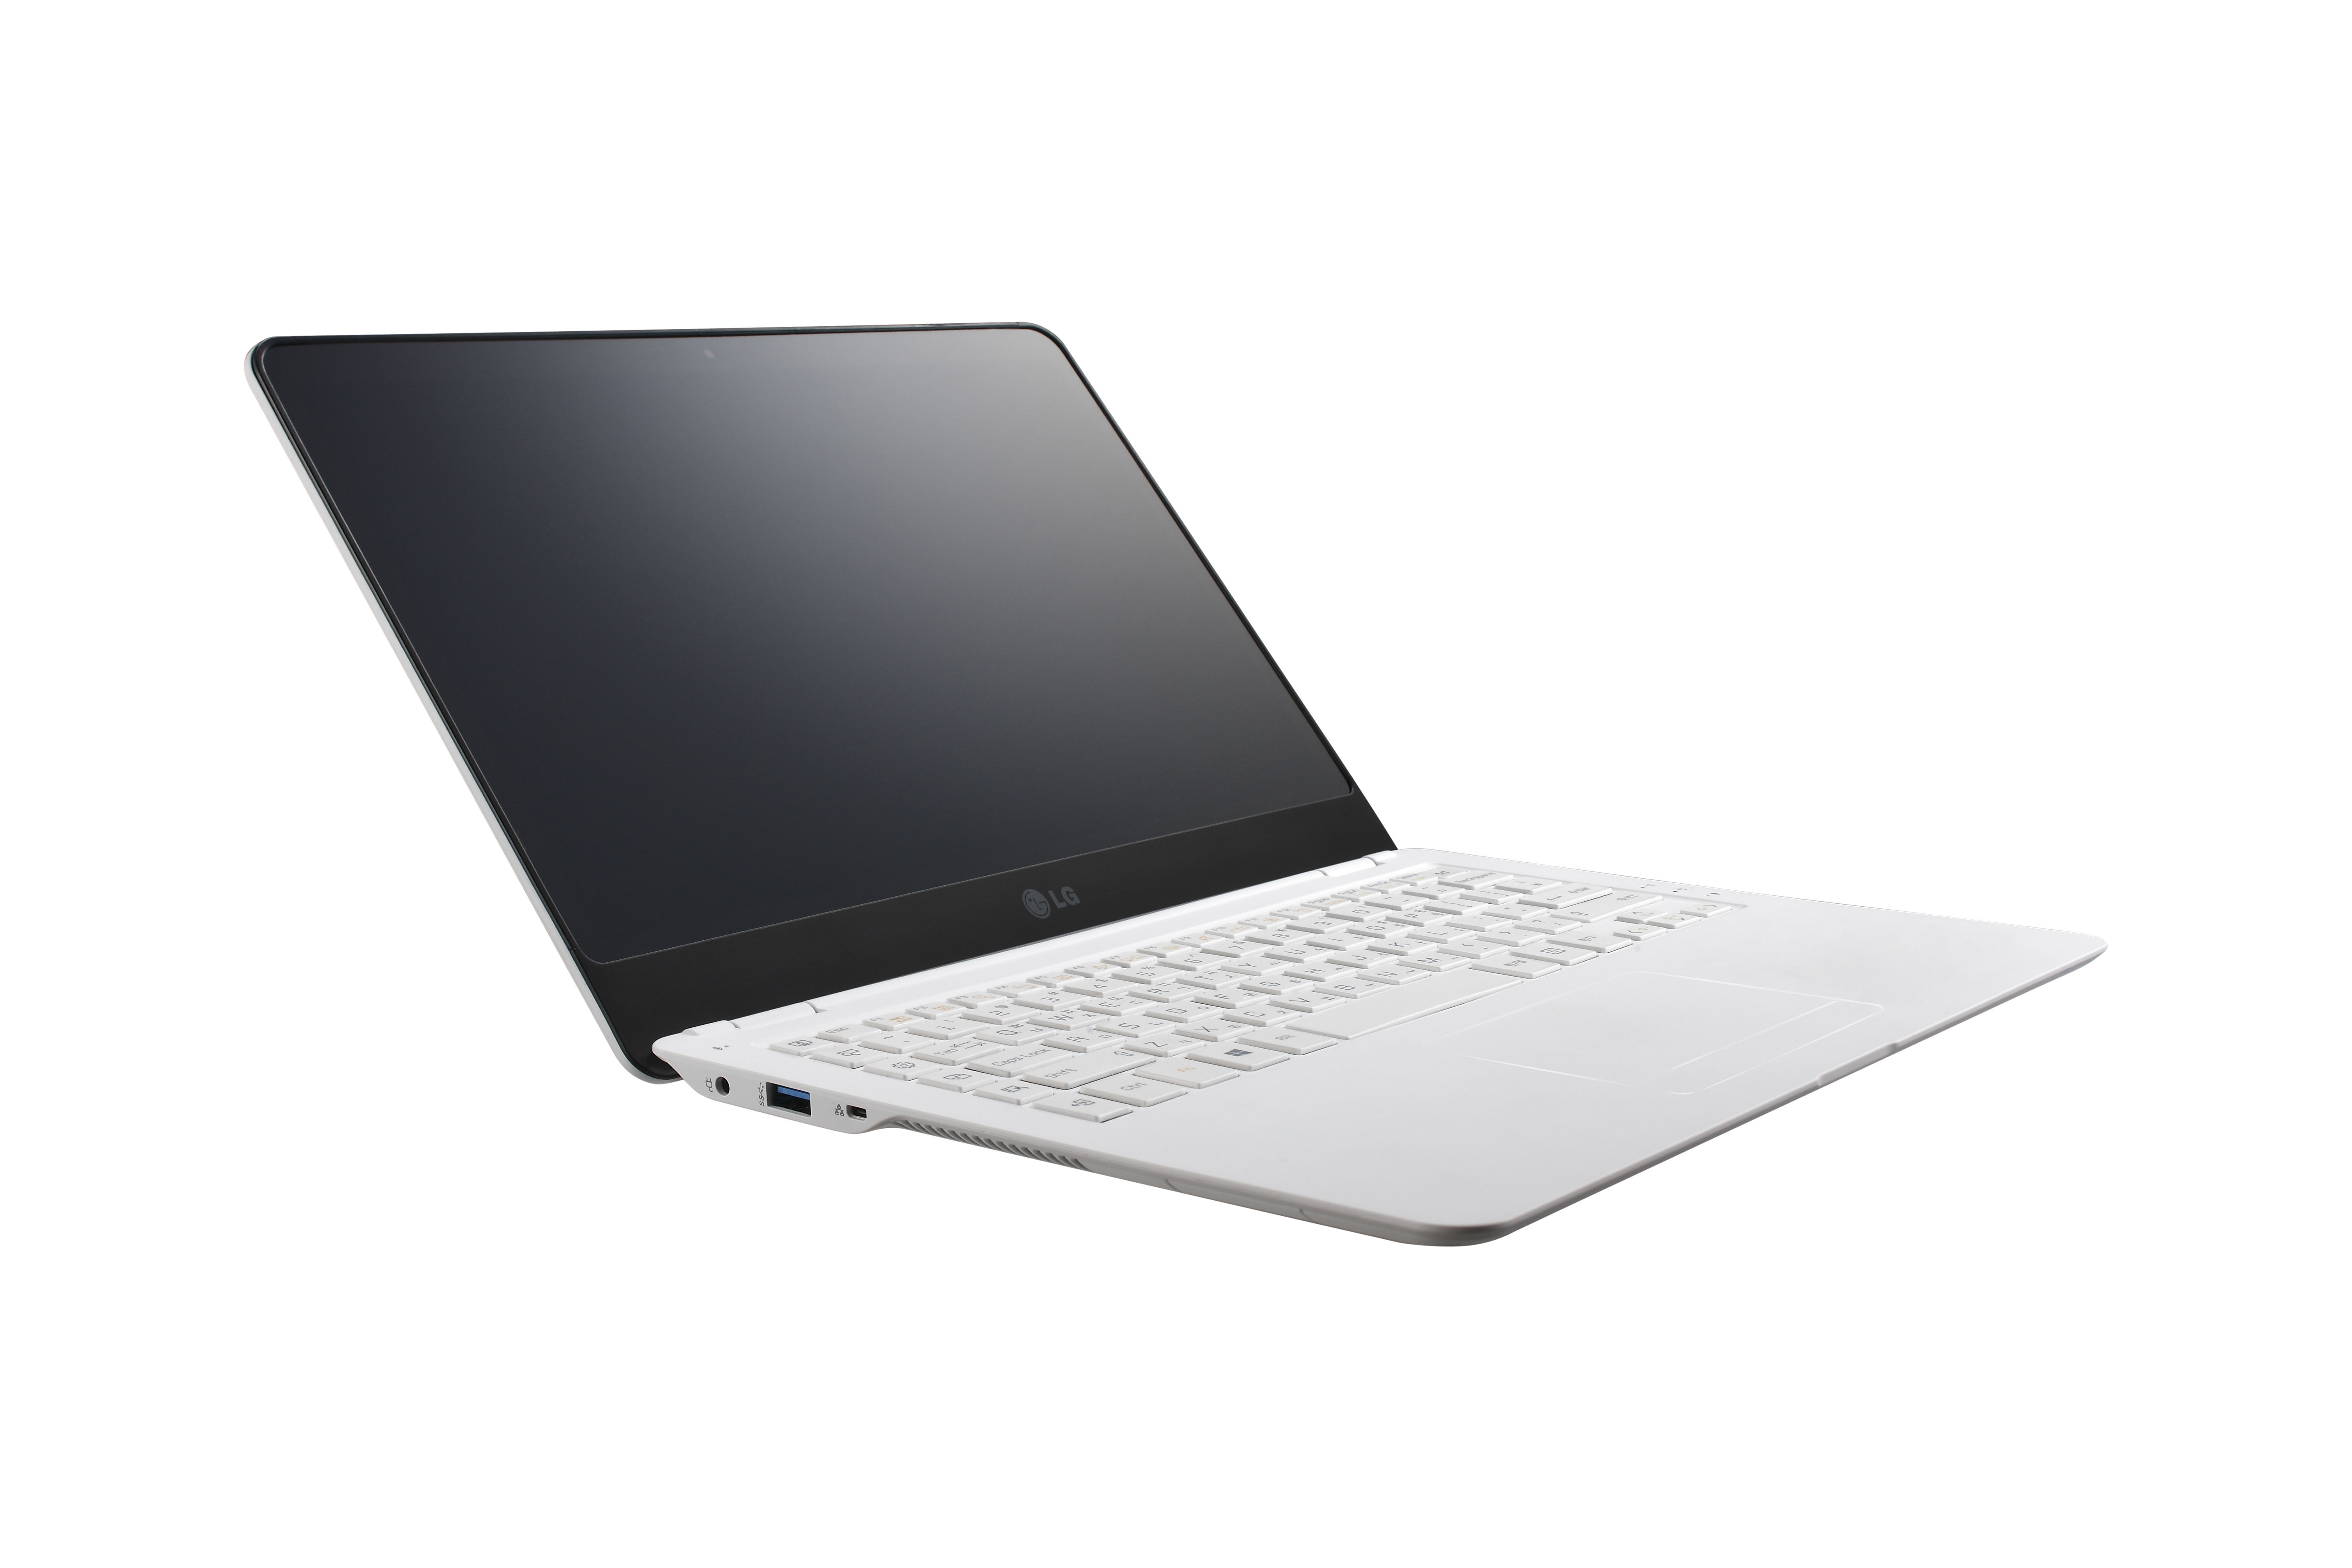 The LG Ultrabook model Z360 with its display open